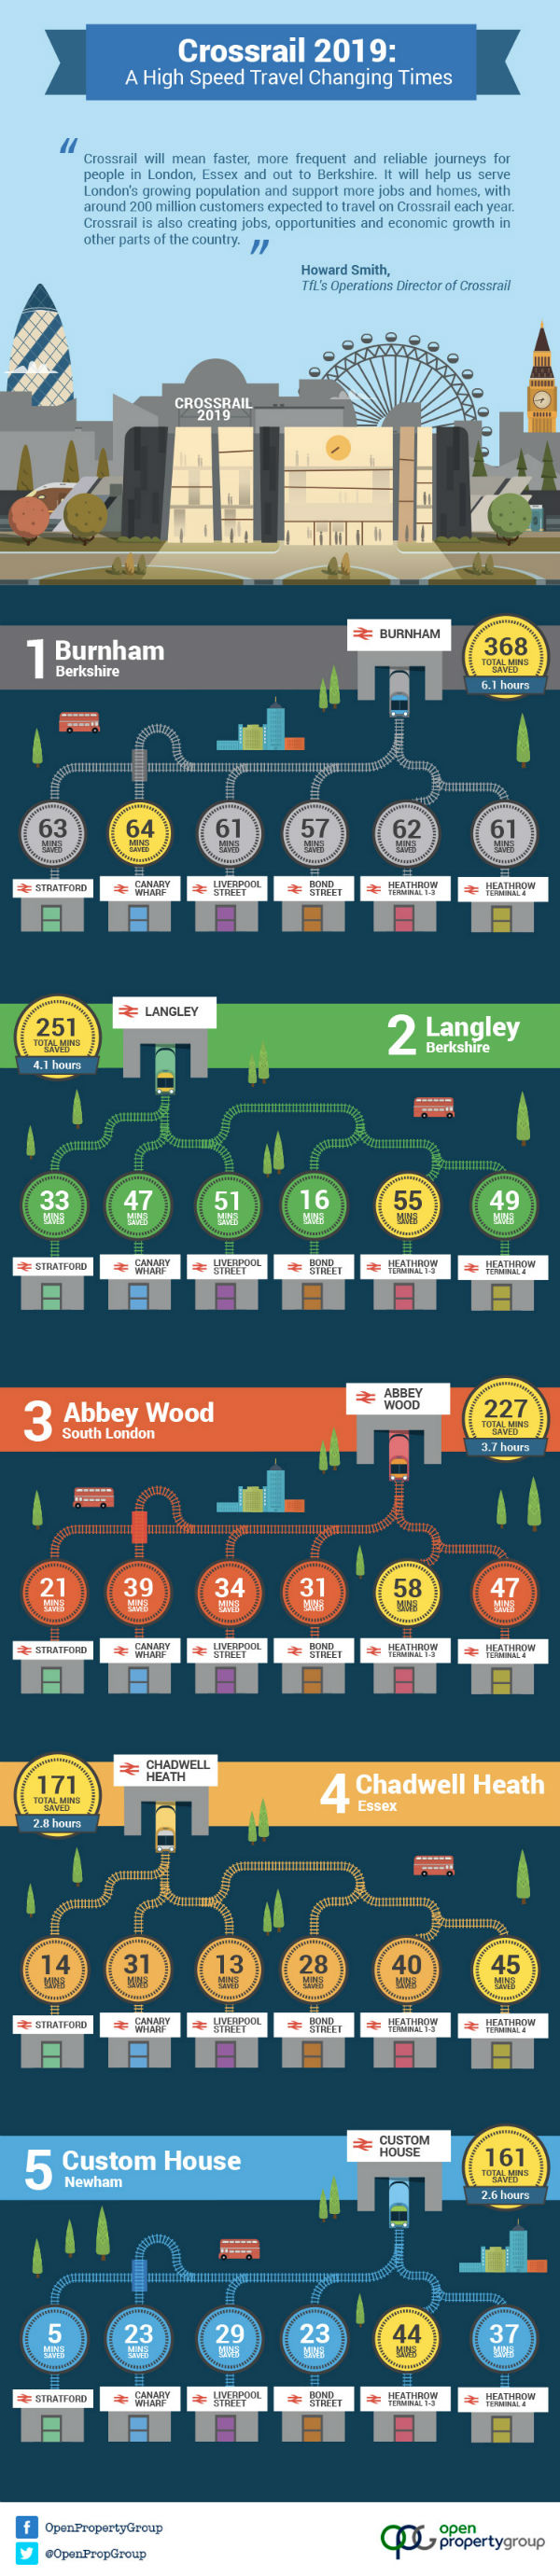 New Crossrail 2019 Infographic (2)